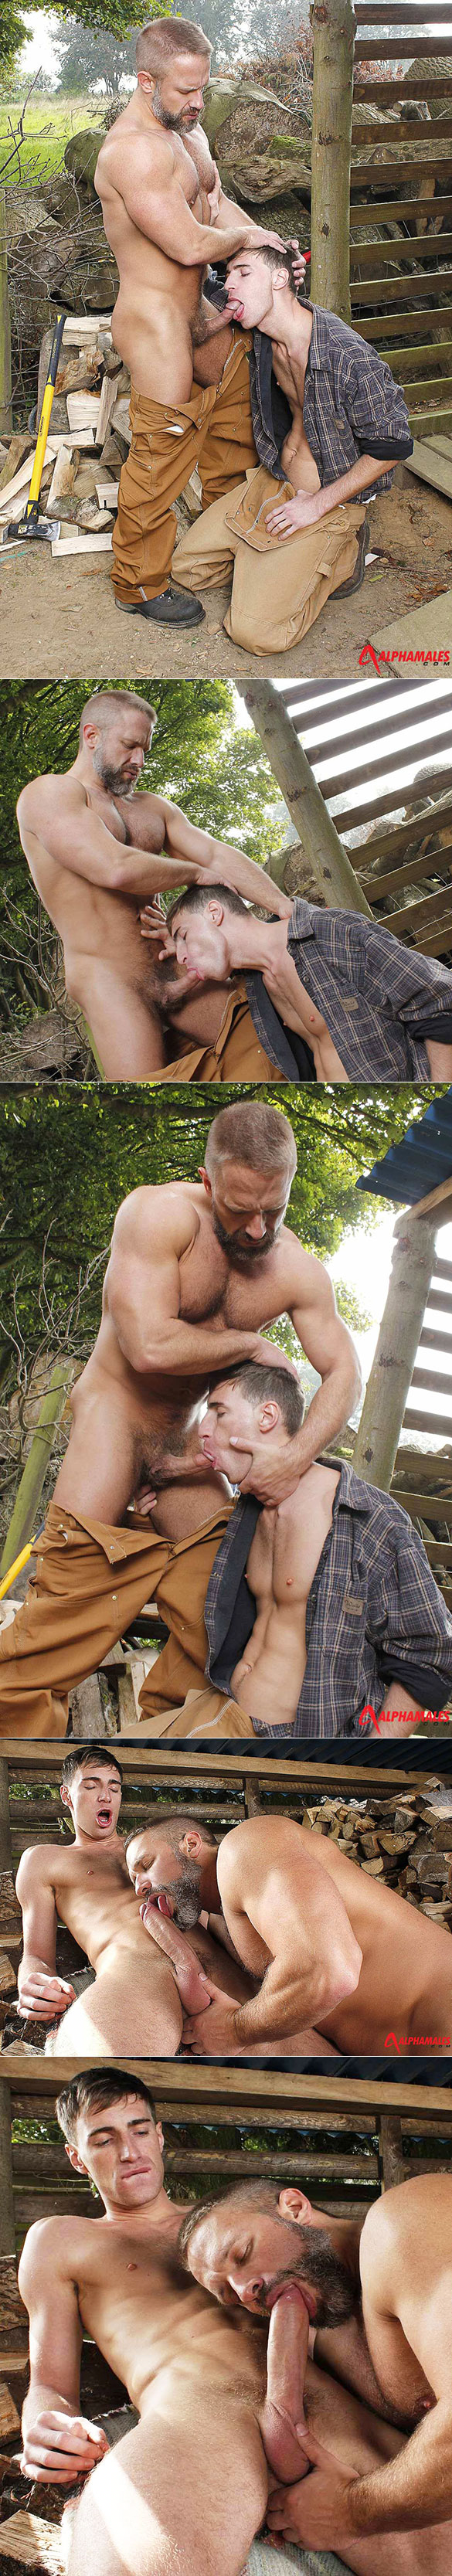 "Alphamales: Kayden Gray pounds Dirk Caber in ""Workmen - The Woodsmen"""